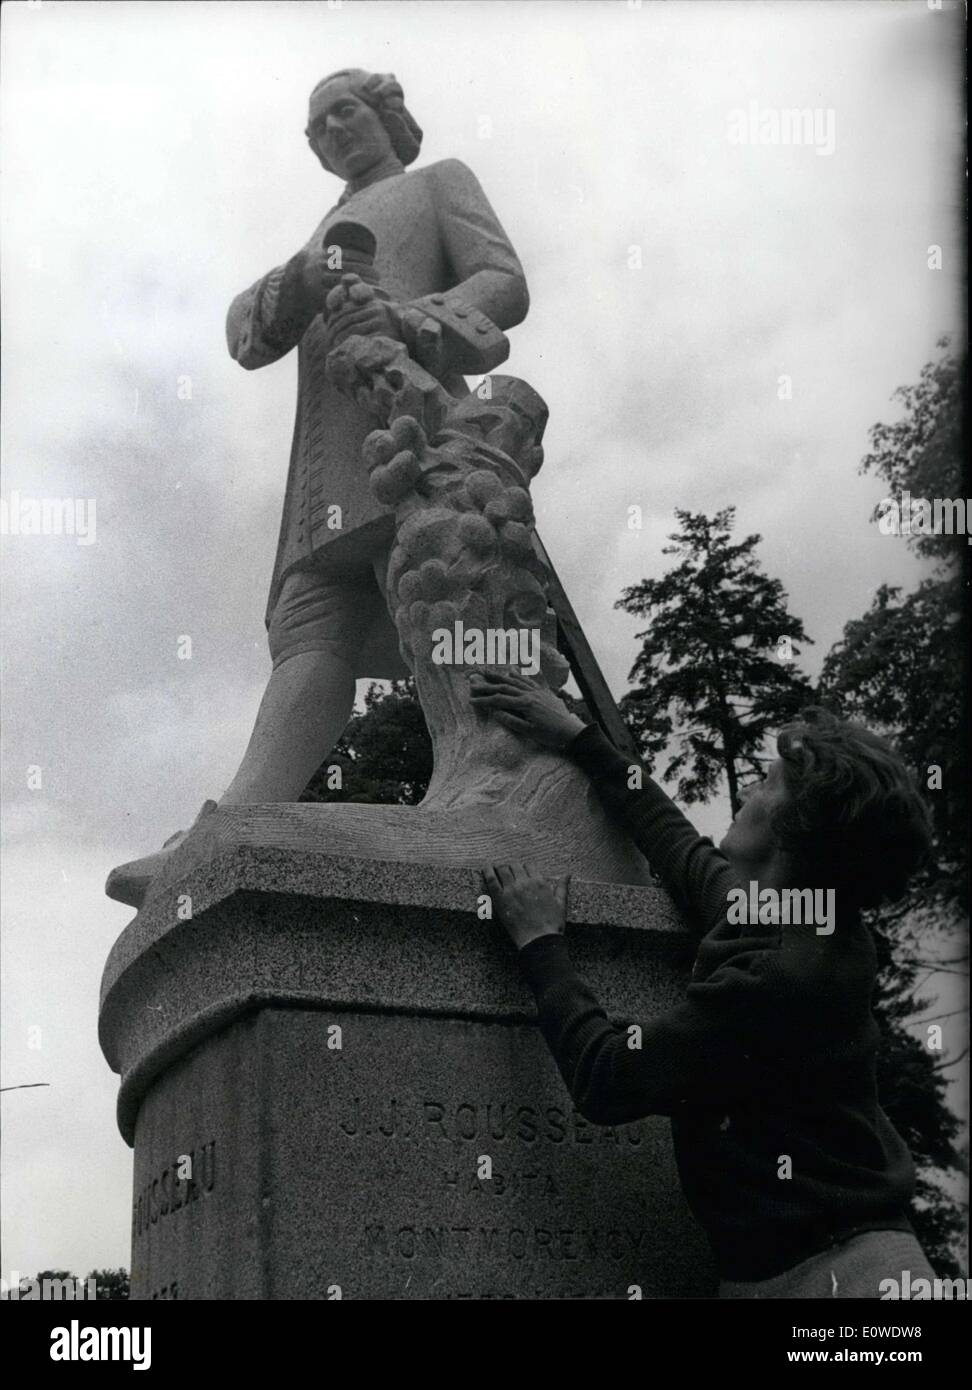 Jun. 13, 1962 - She did the statue for Rousseau's 250th birthday. It is a statue of Rousseau's Emile's father. It Stock Photo